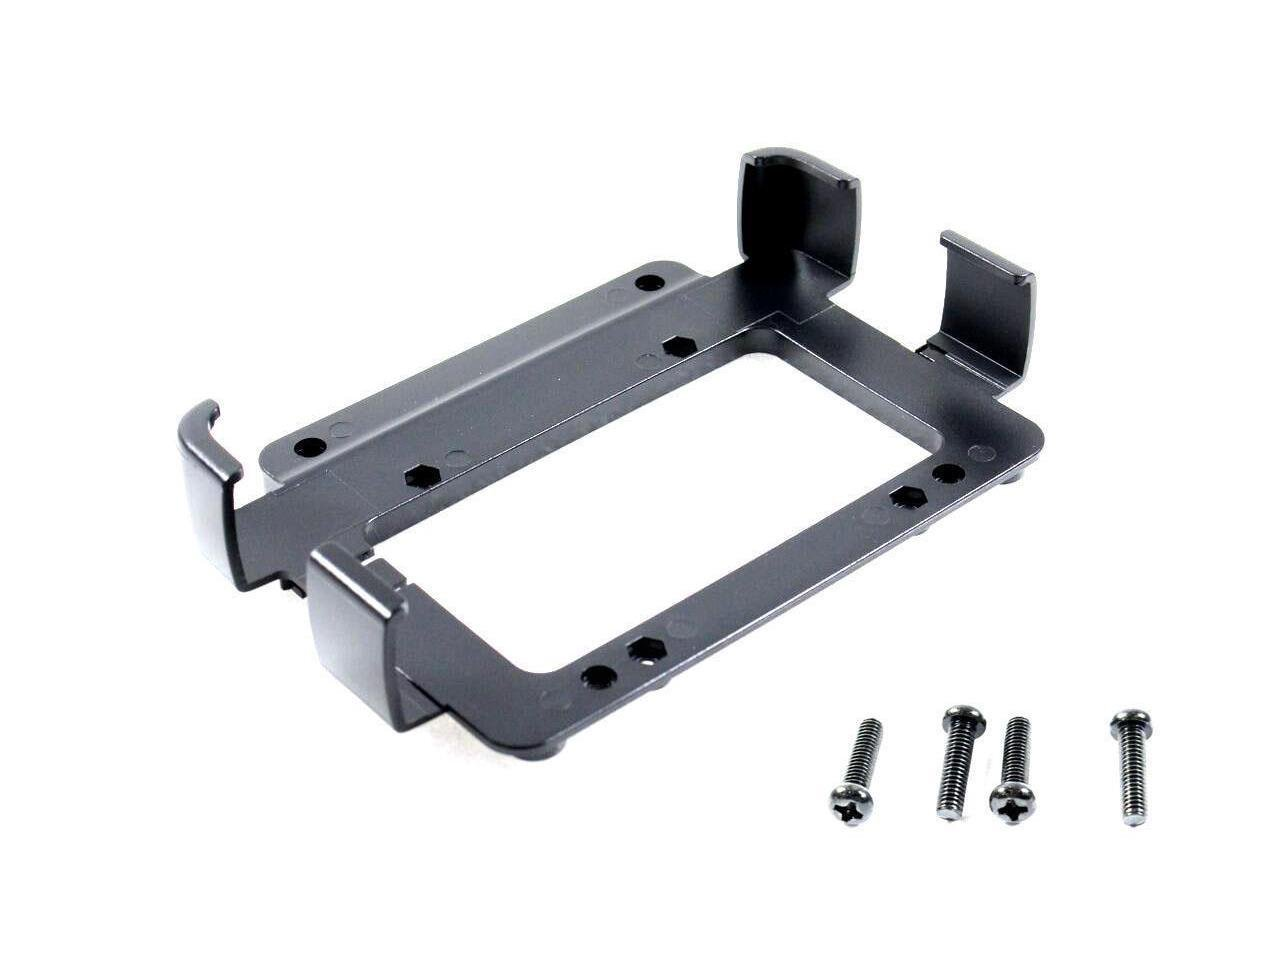 Dell Wyse水平スタンドアセンブリwith Screw for thin client 069 W95 069 W95 cn-069 W95   B07F1GDW8F